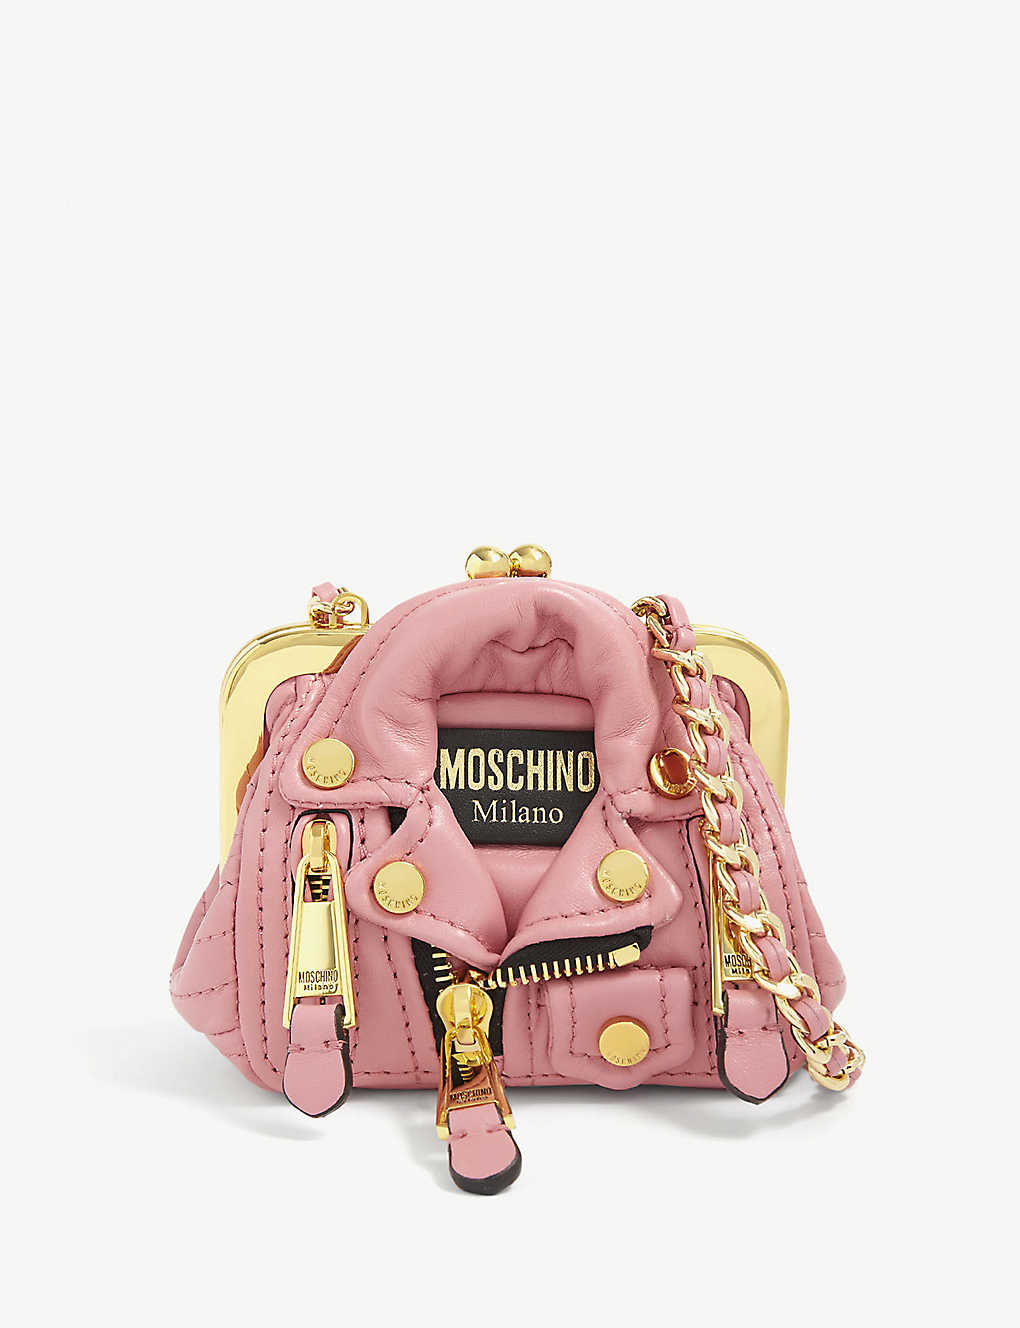 MOSCHINO: Biker jacket micro faux leather shoulder bag